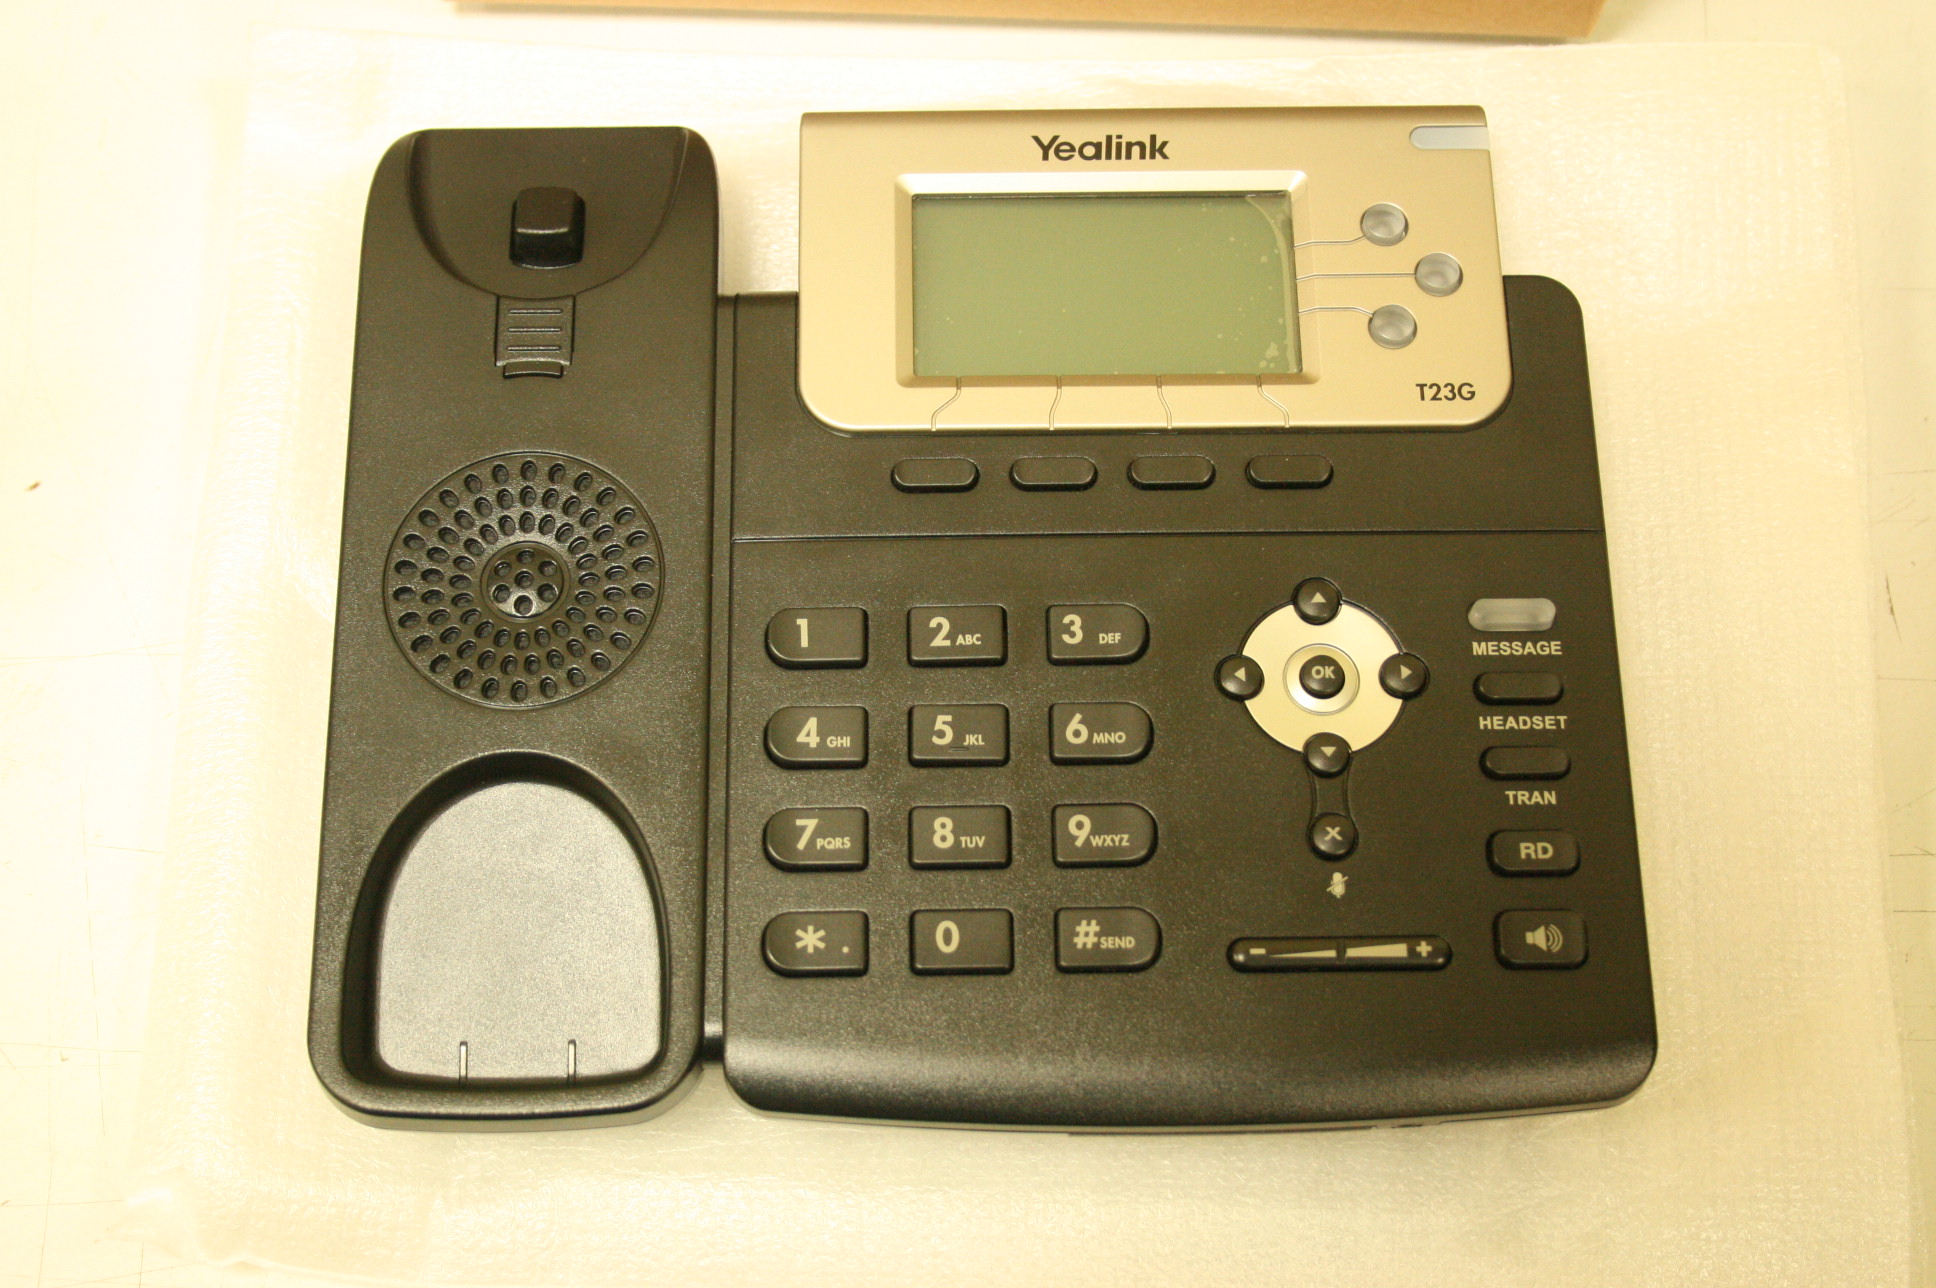 SALE OUT. Yealink SIP-T23G IP Phone Yealink SIP-T23G IP Phone, DEMO, 132x64-pixel graphical LCD with backlight, 3 SIP accounts